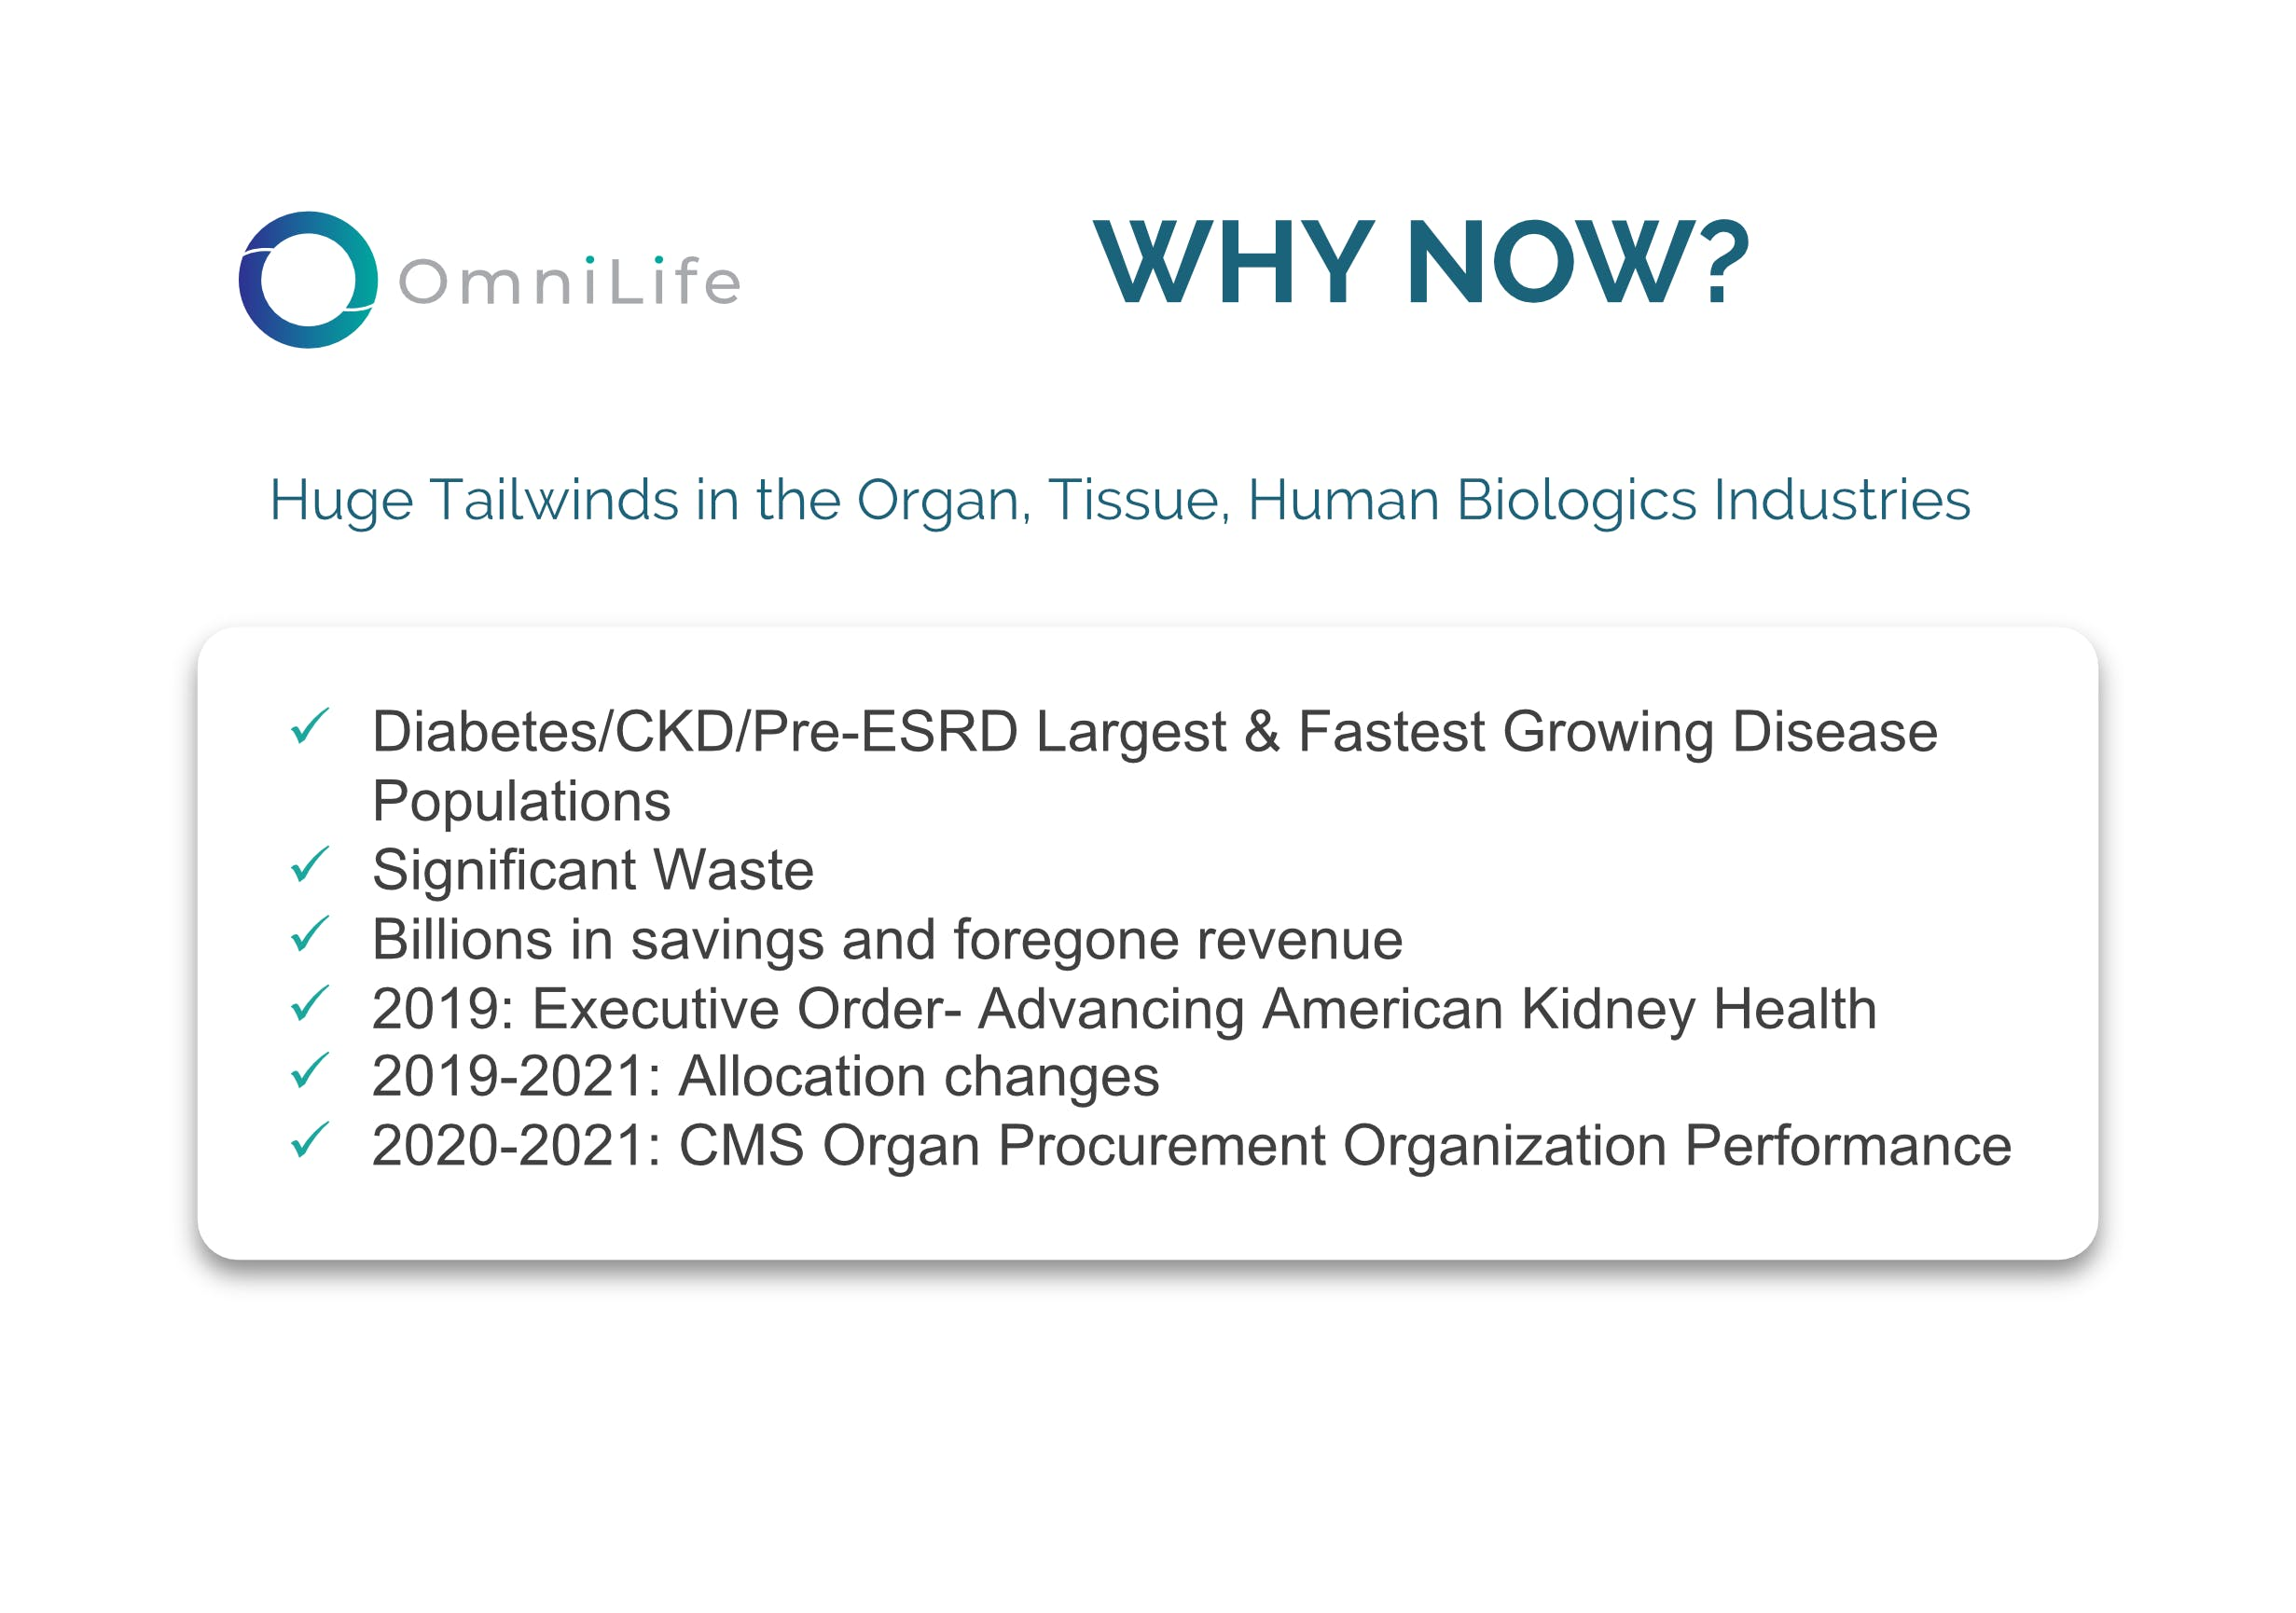 Huge tailwinds in the organ, tissue, human biologics industries diabetes largest & fastest growing disease populations significant waste billions in savings cms organ procurement organization performance